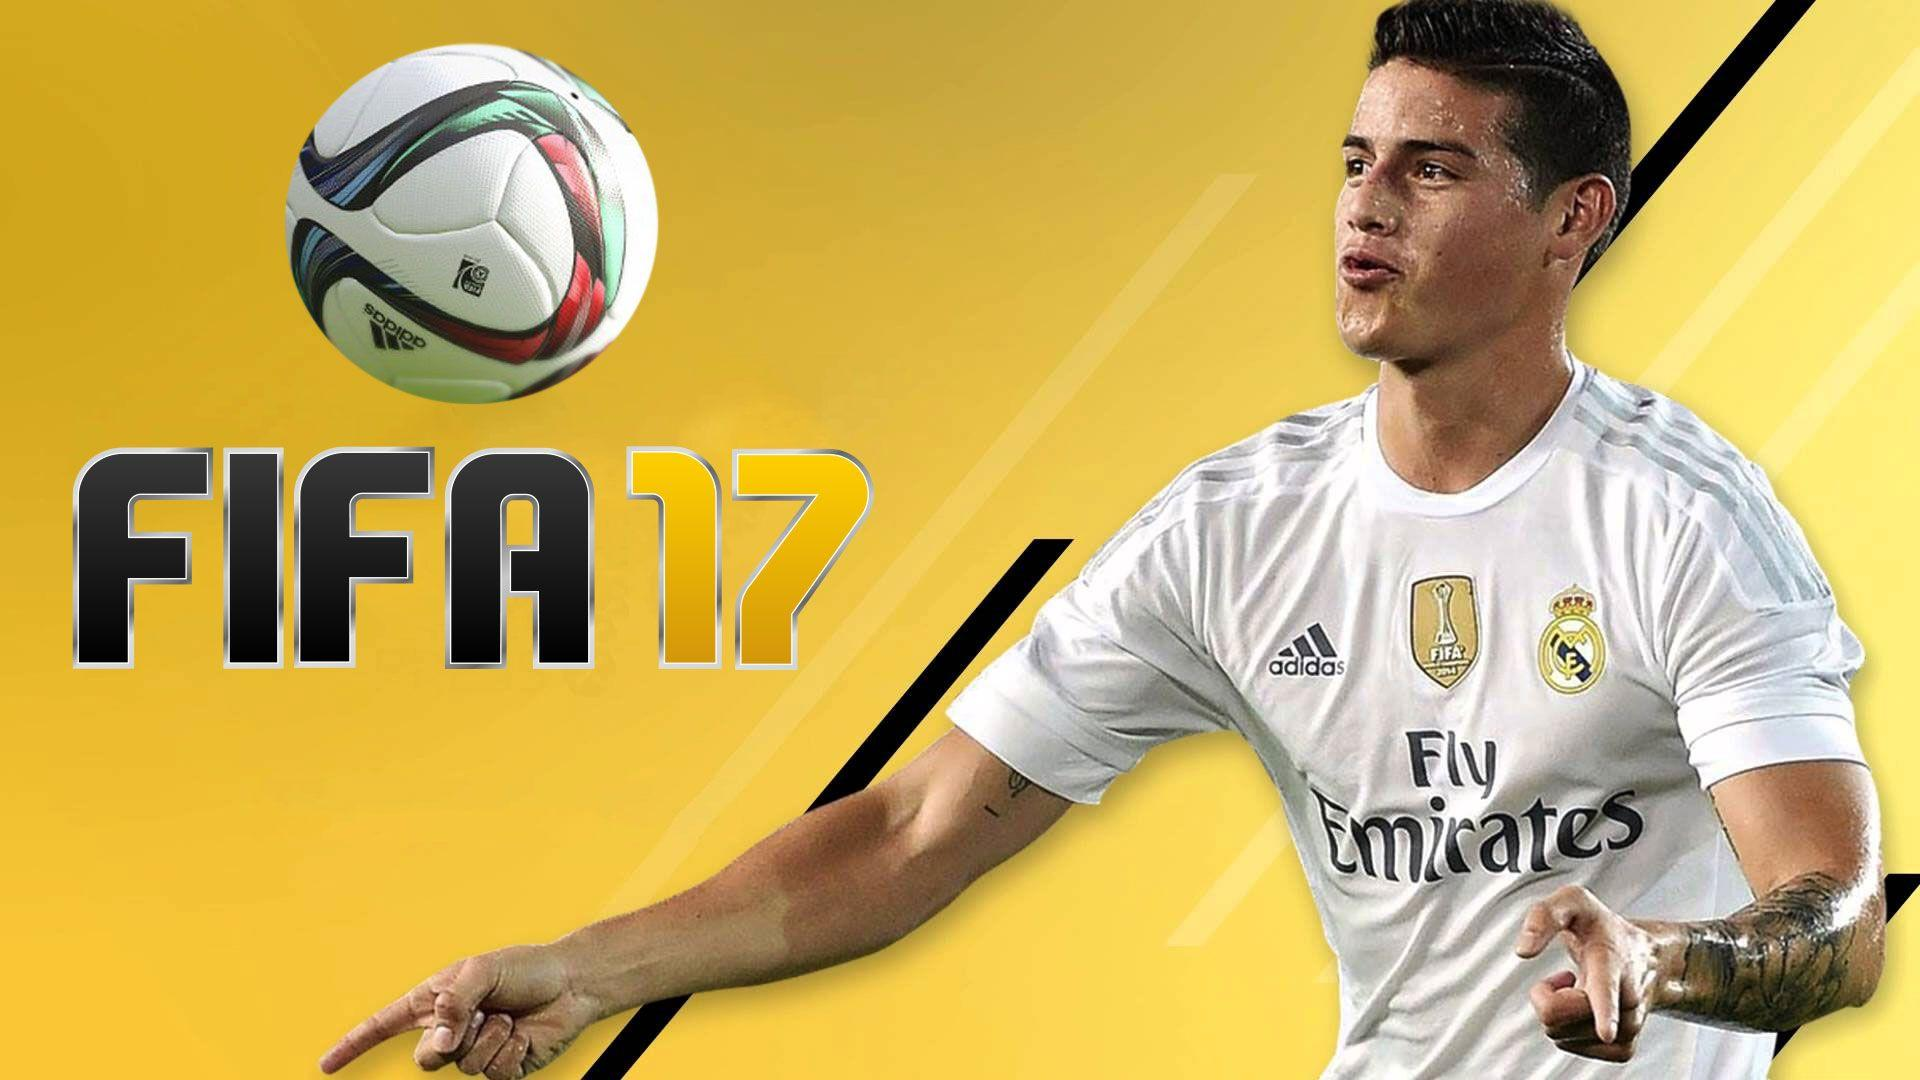 FIFA 17 Wallpapers in Ultra HD | 4K